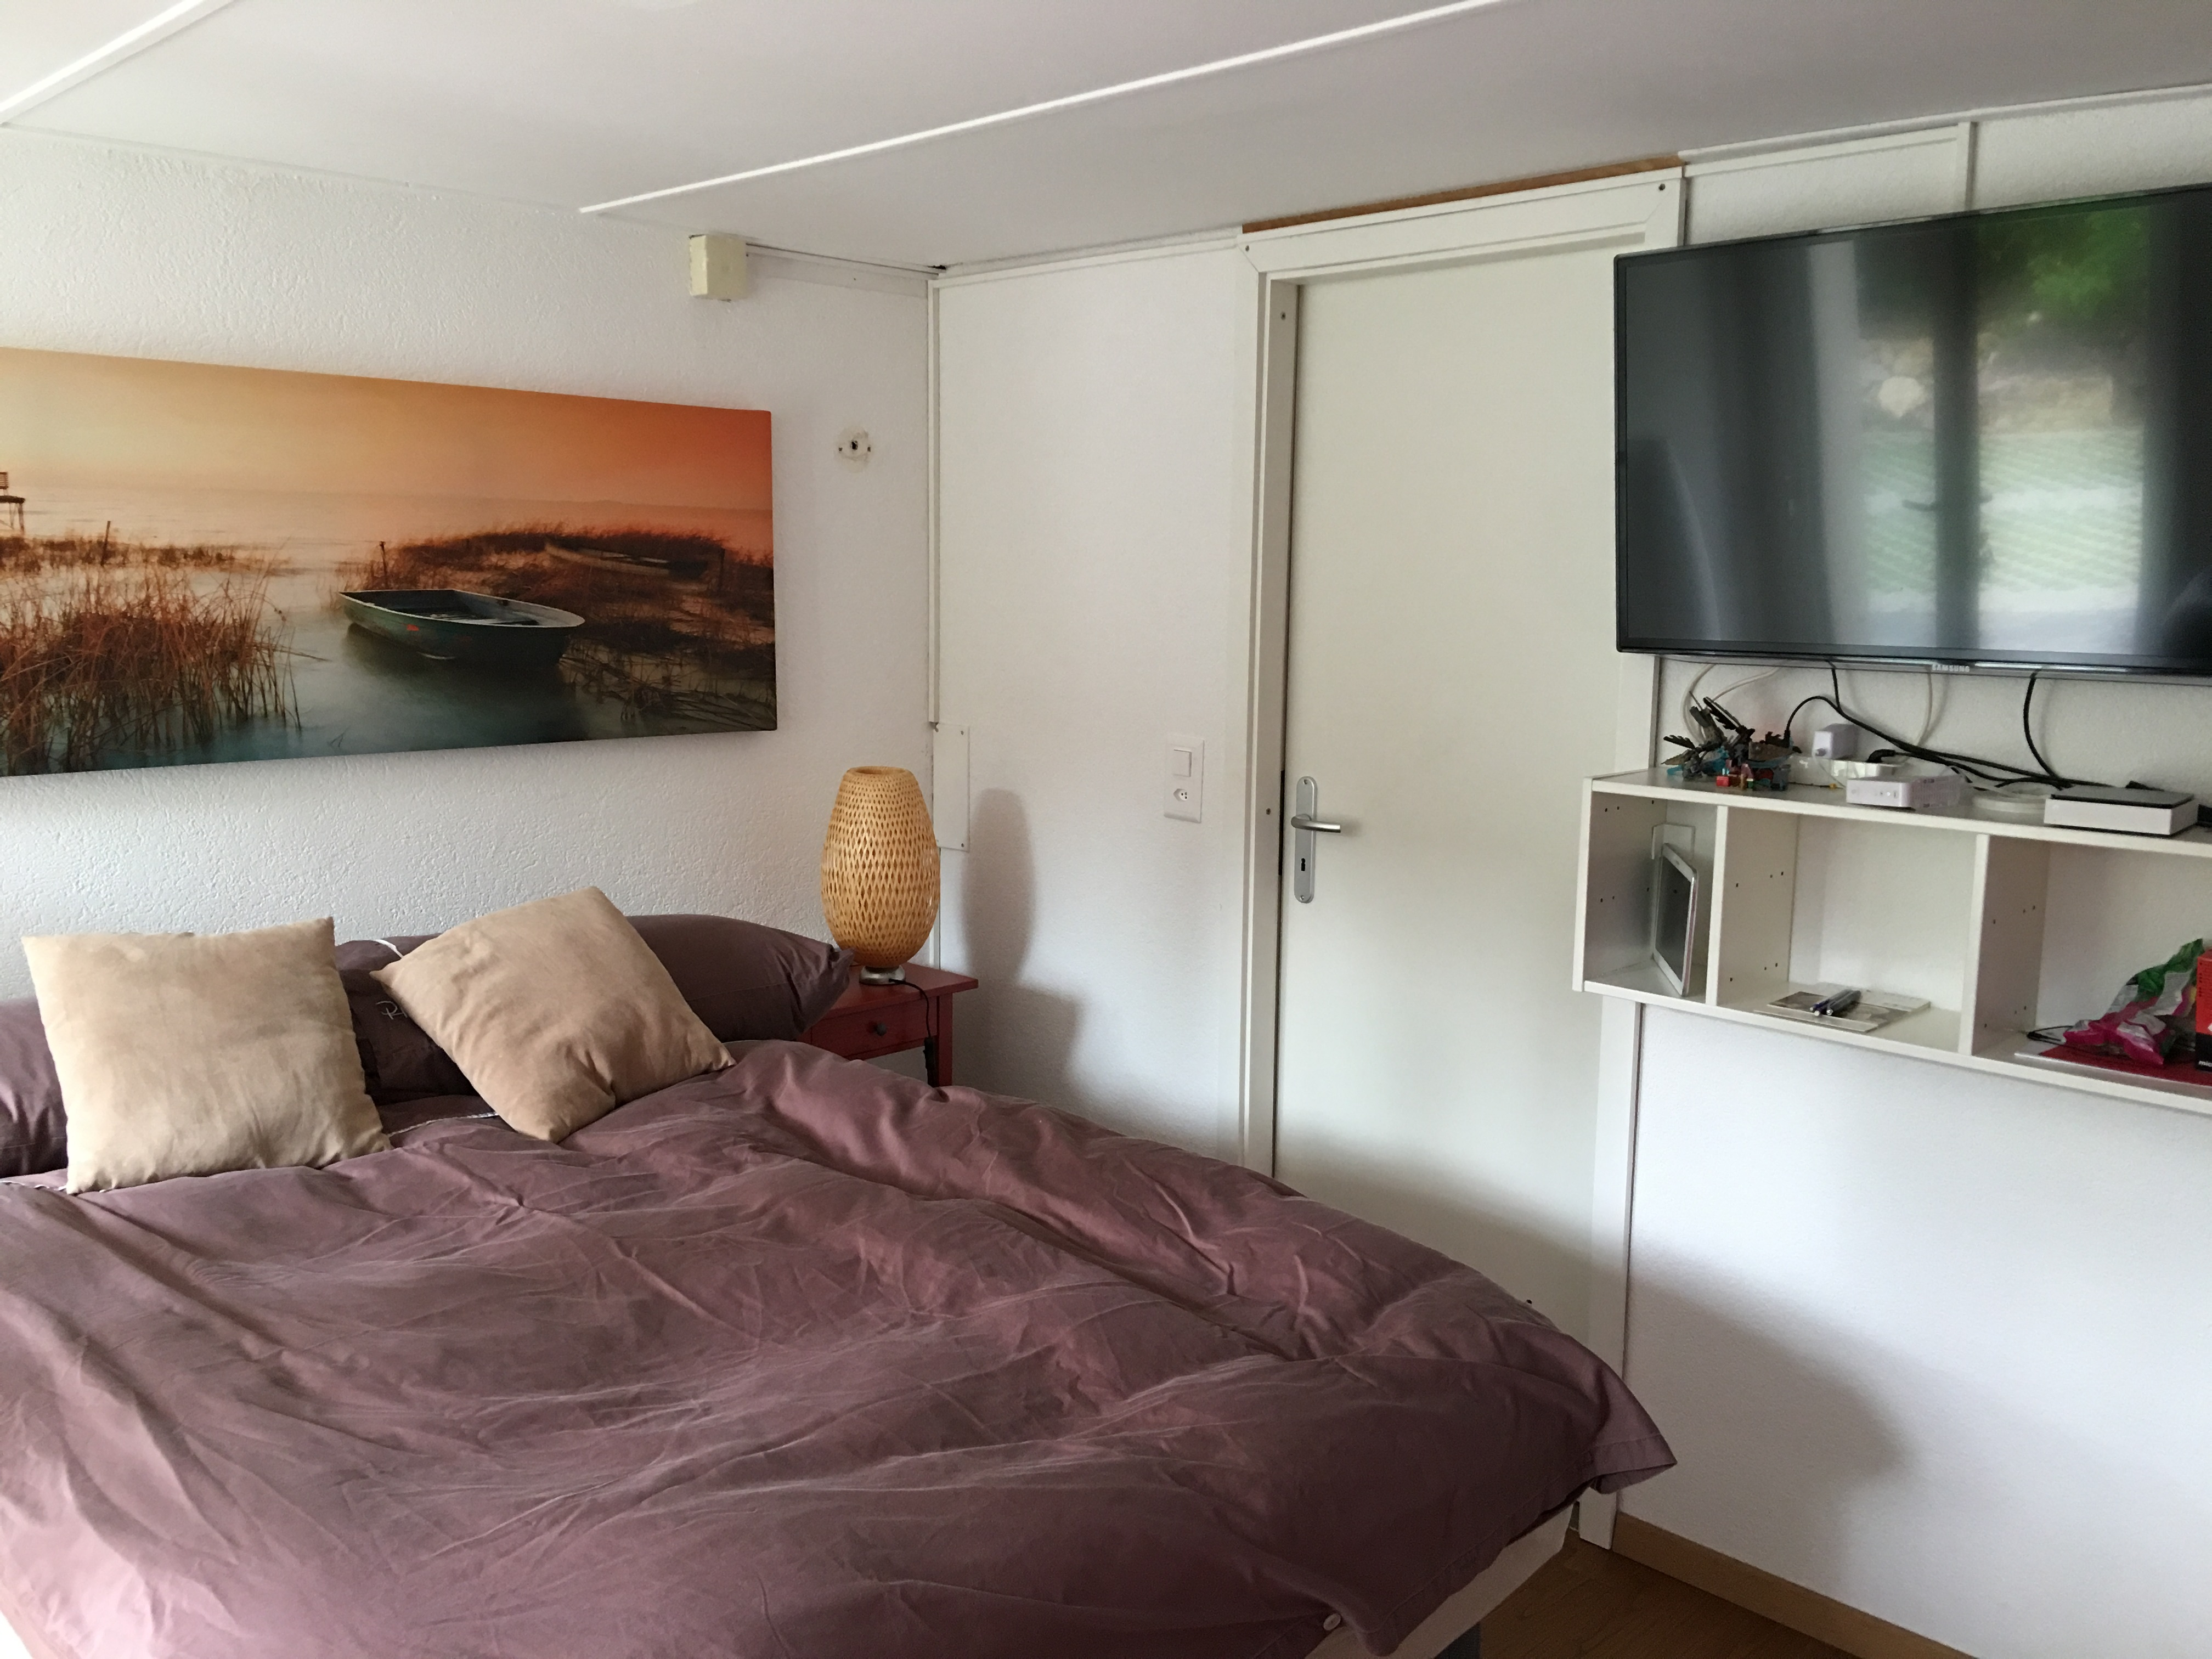 Studio theresa meubl 3 km lausanne location meubl e lutry roomlala - Location chambre lausanne ...